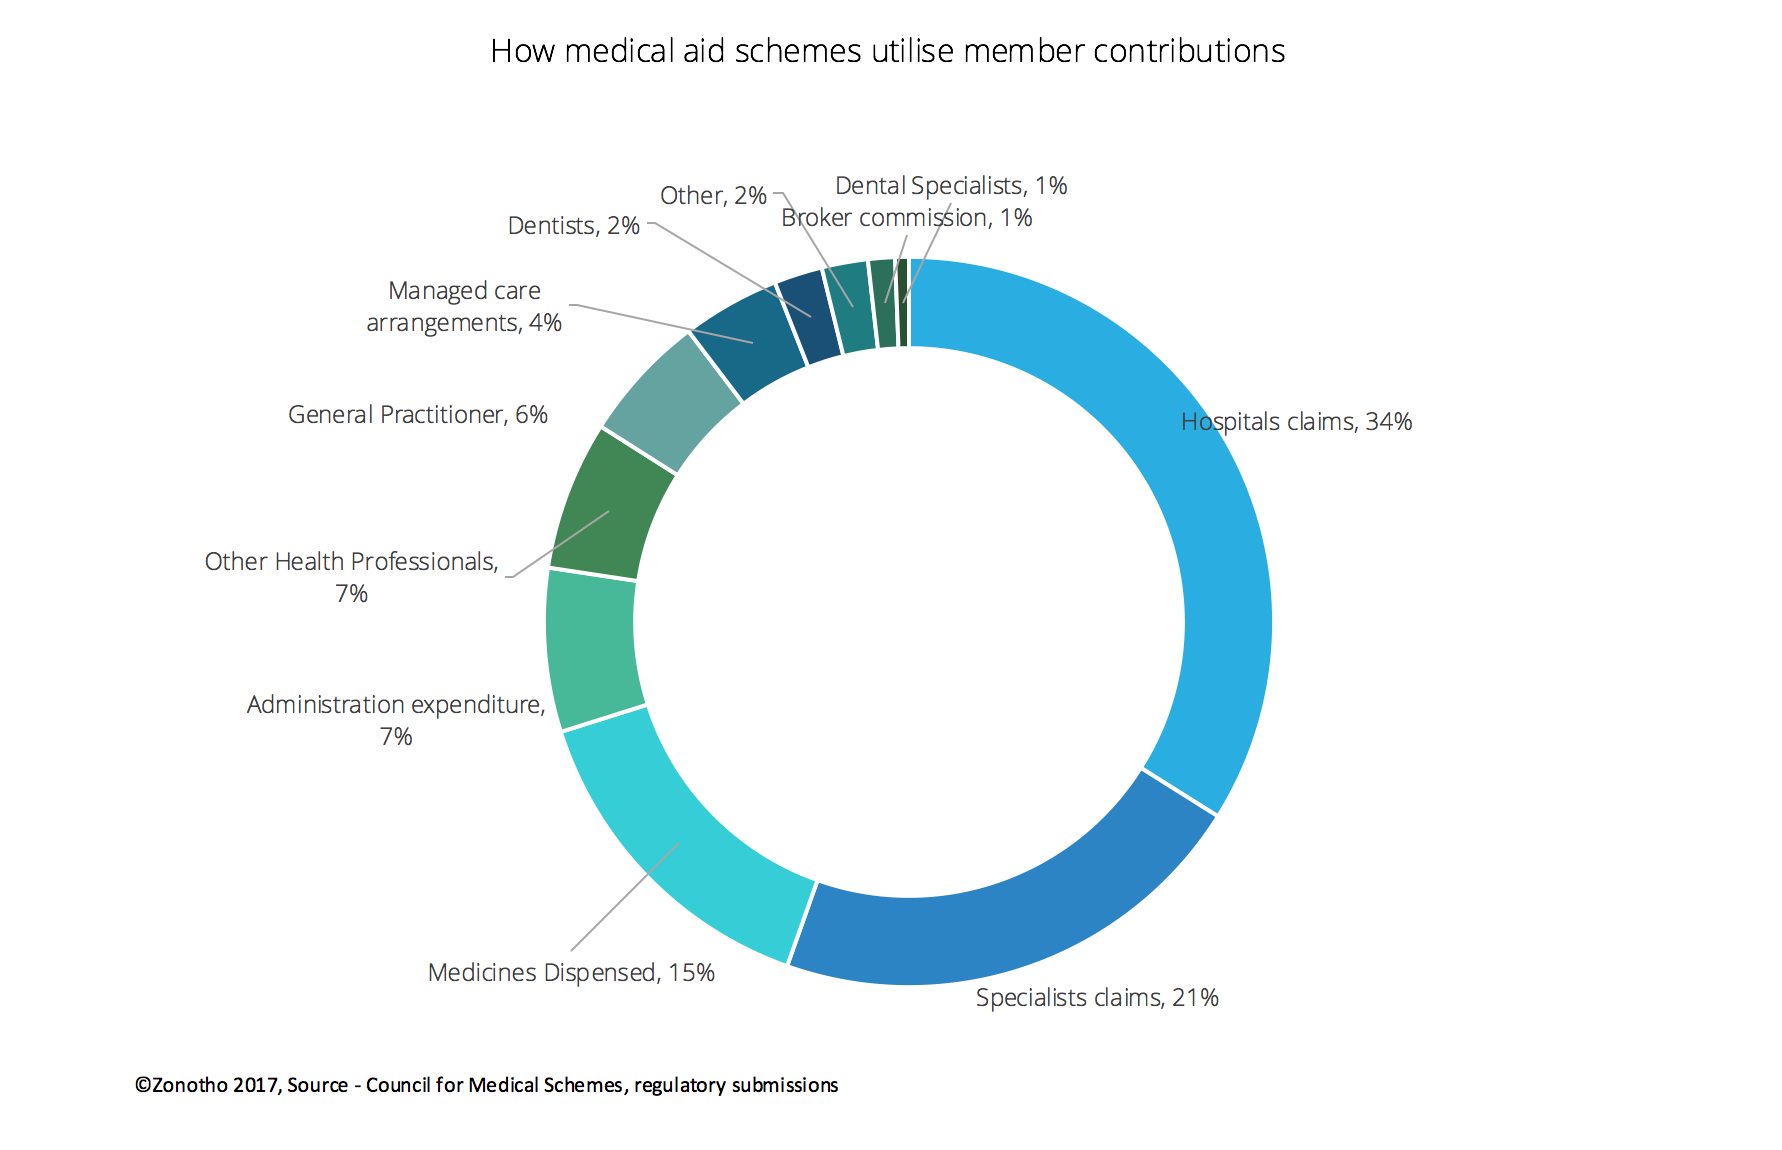 How medical scheme contributions are utilised